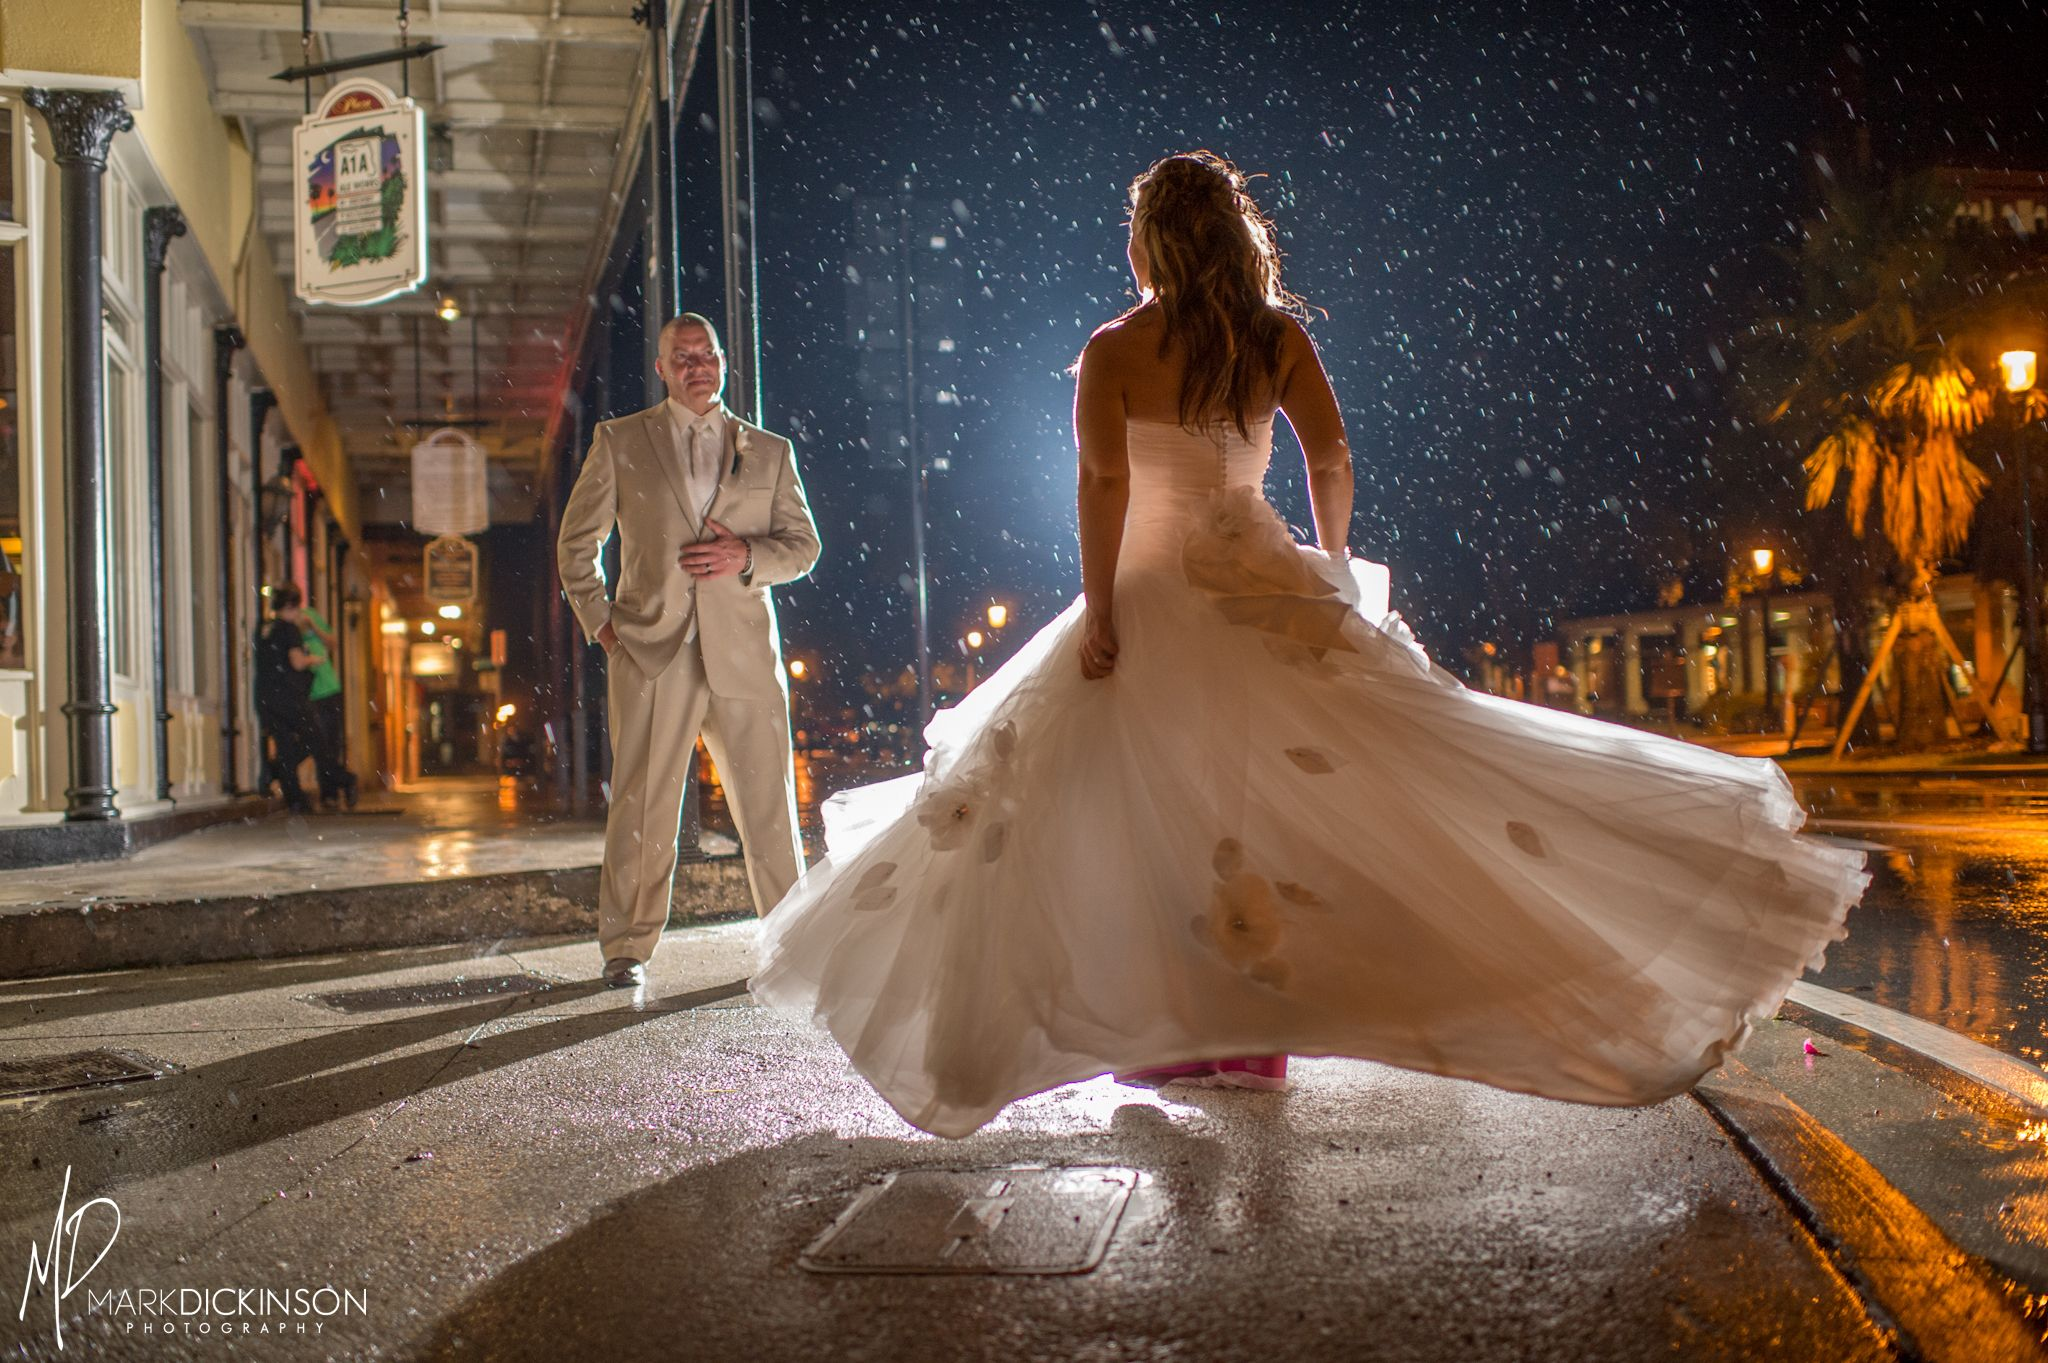 Tropical Storms Can T Stop A Couple In Love Beryl St Augustine Wedding Beach Wedding Photographer Best Wedding Photographers Wedding